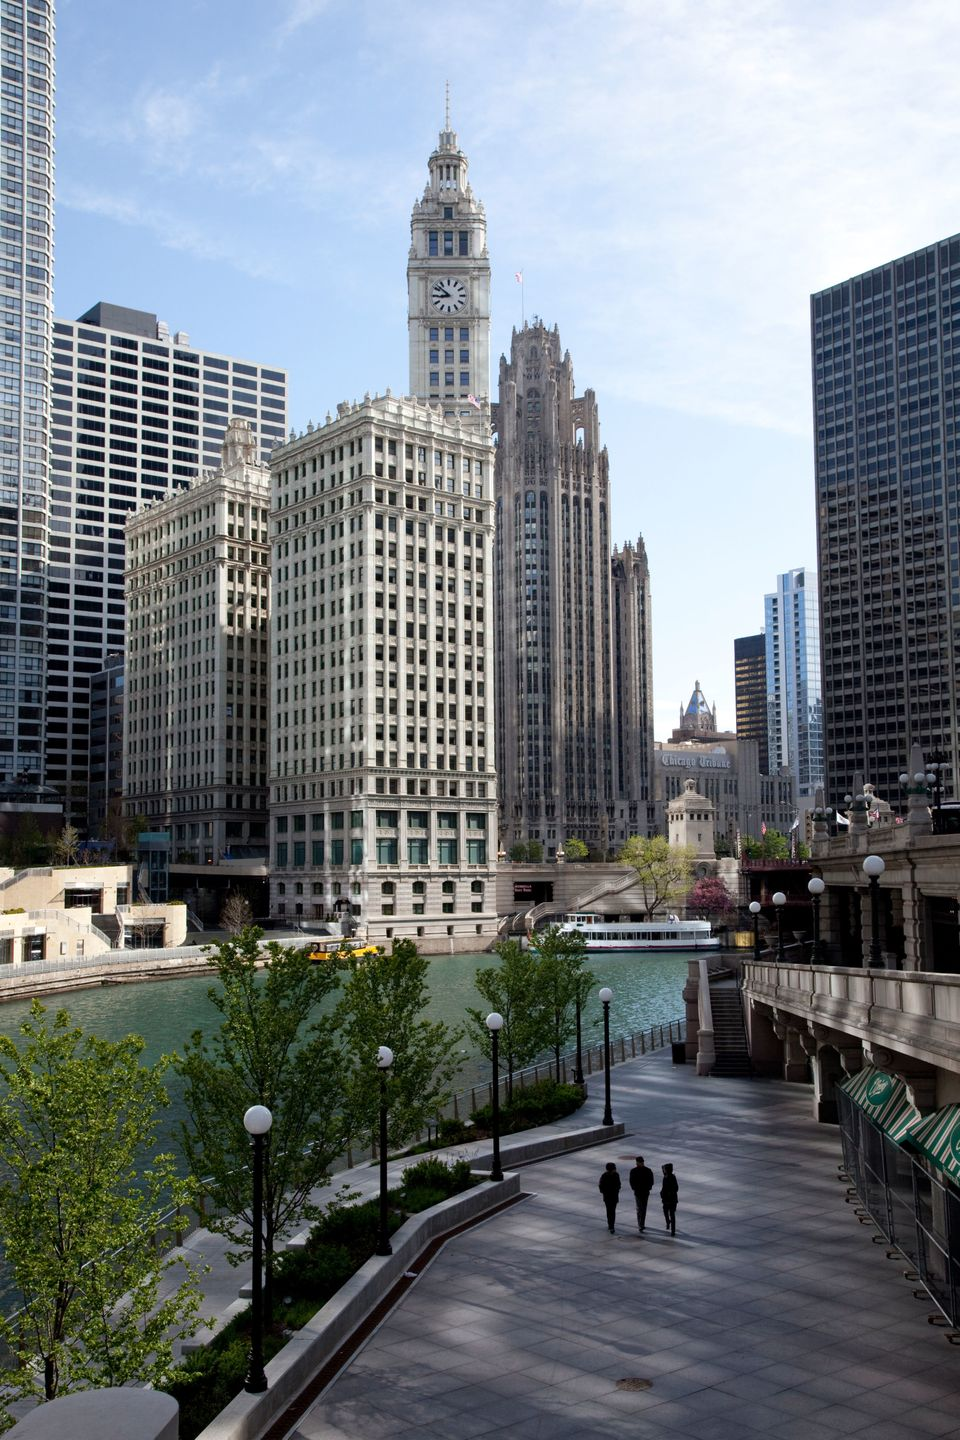 A view of the Wrigley Building and Tribune Tower witha dyed green Chicago River below.